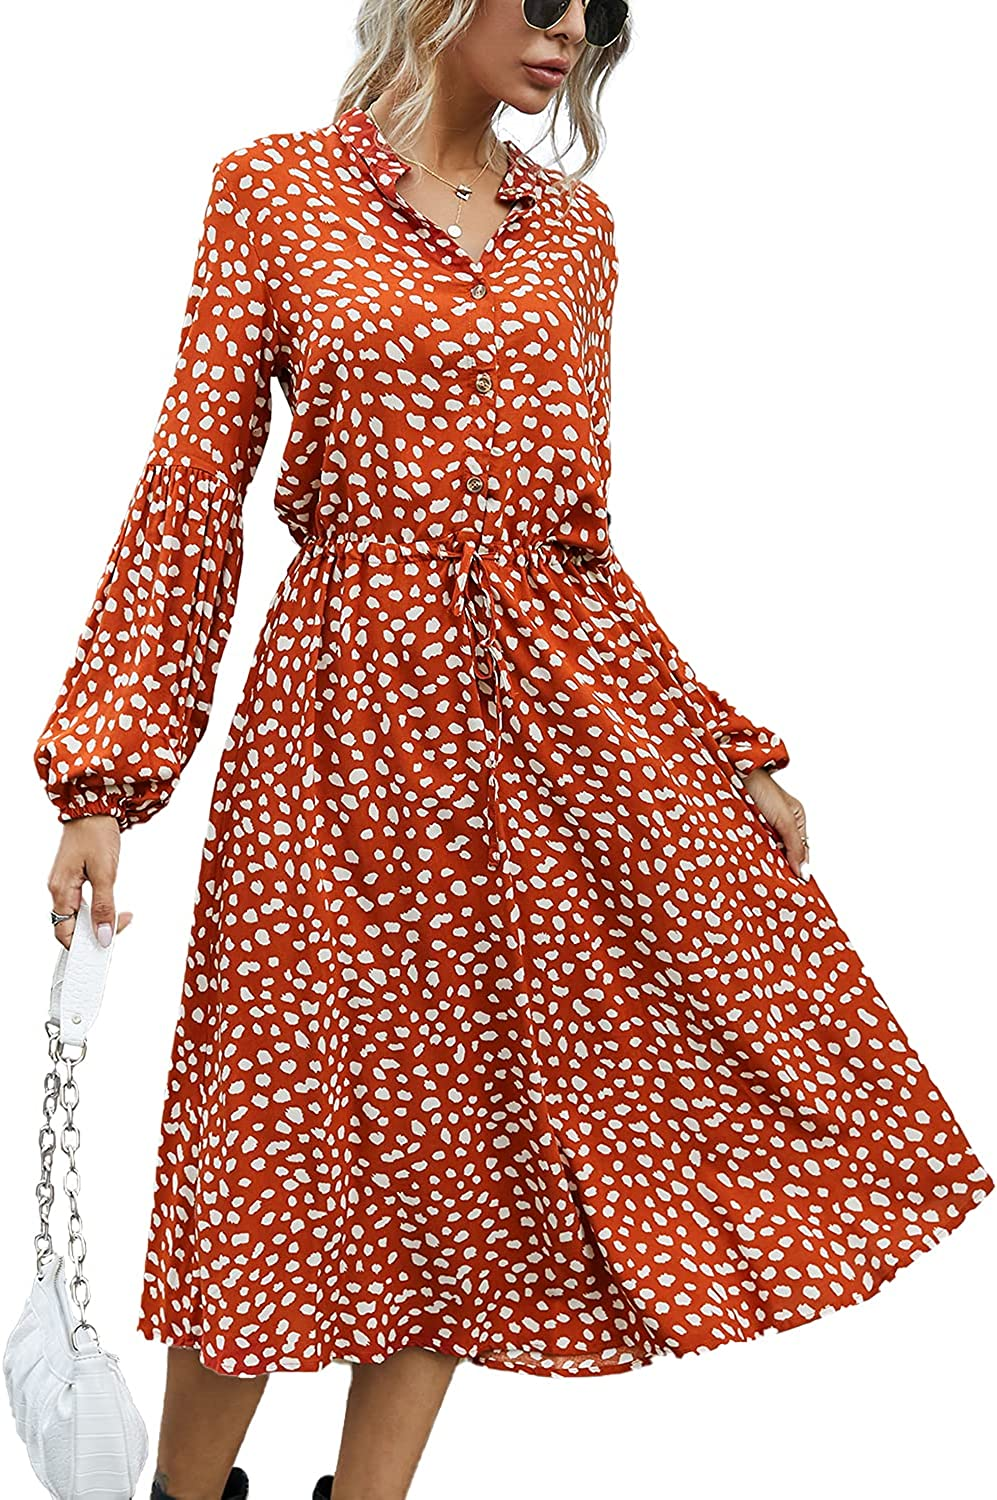 BROVAVE Women's Casual Polka Dot Print Clearance SALE! Limited time! Vintage Short Coll Gorgeous Sleeve